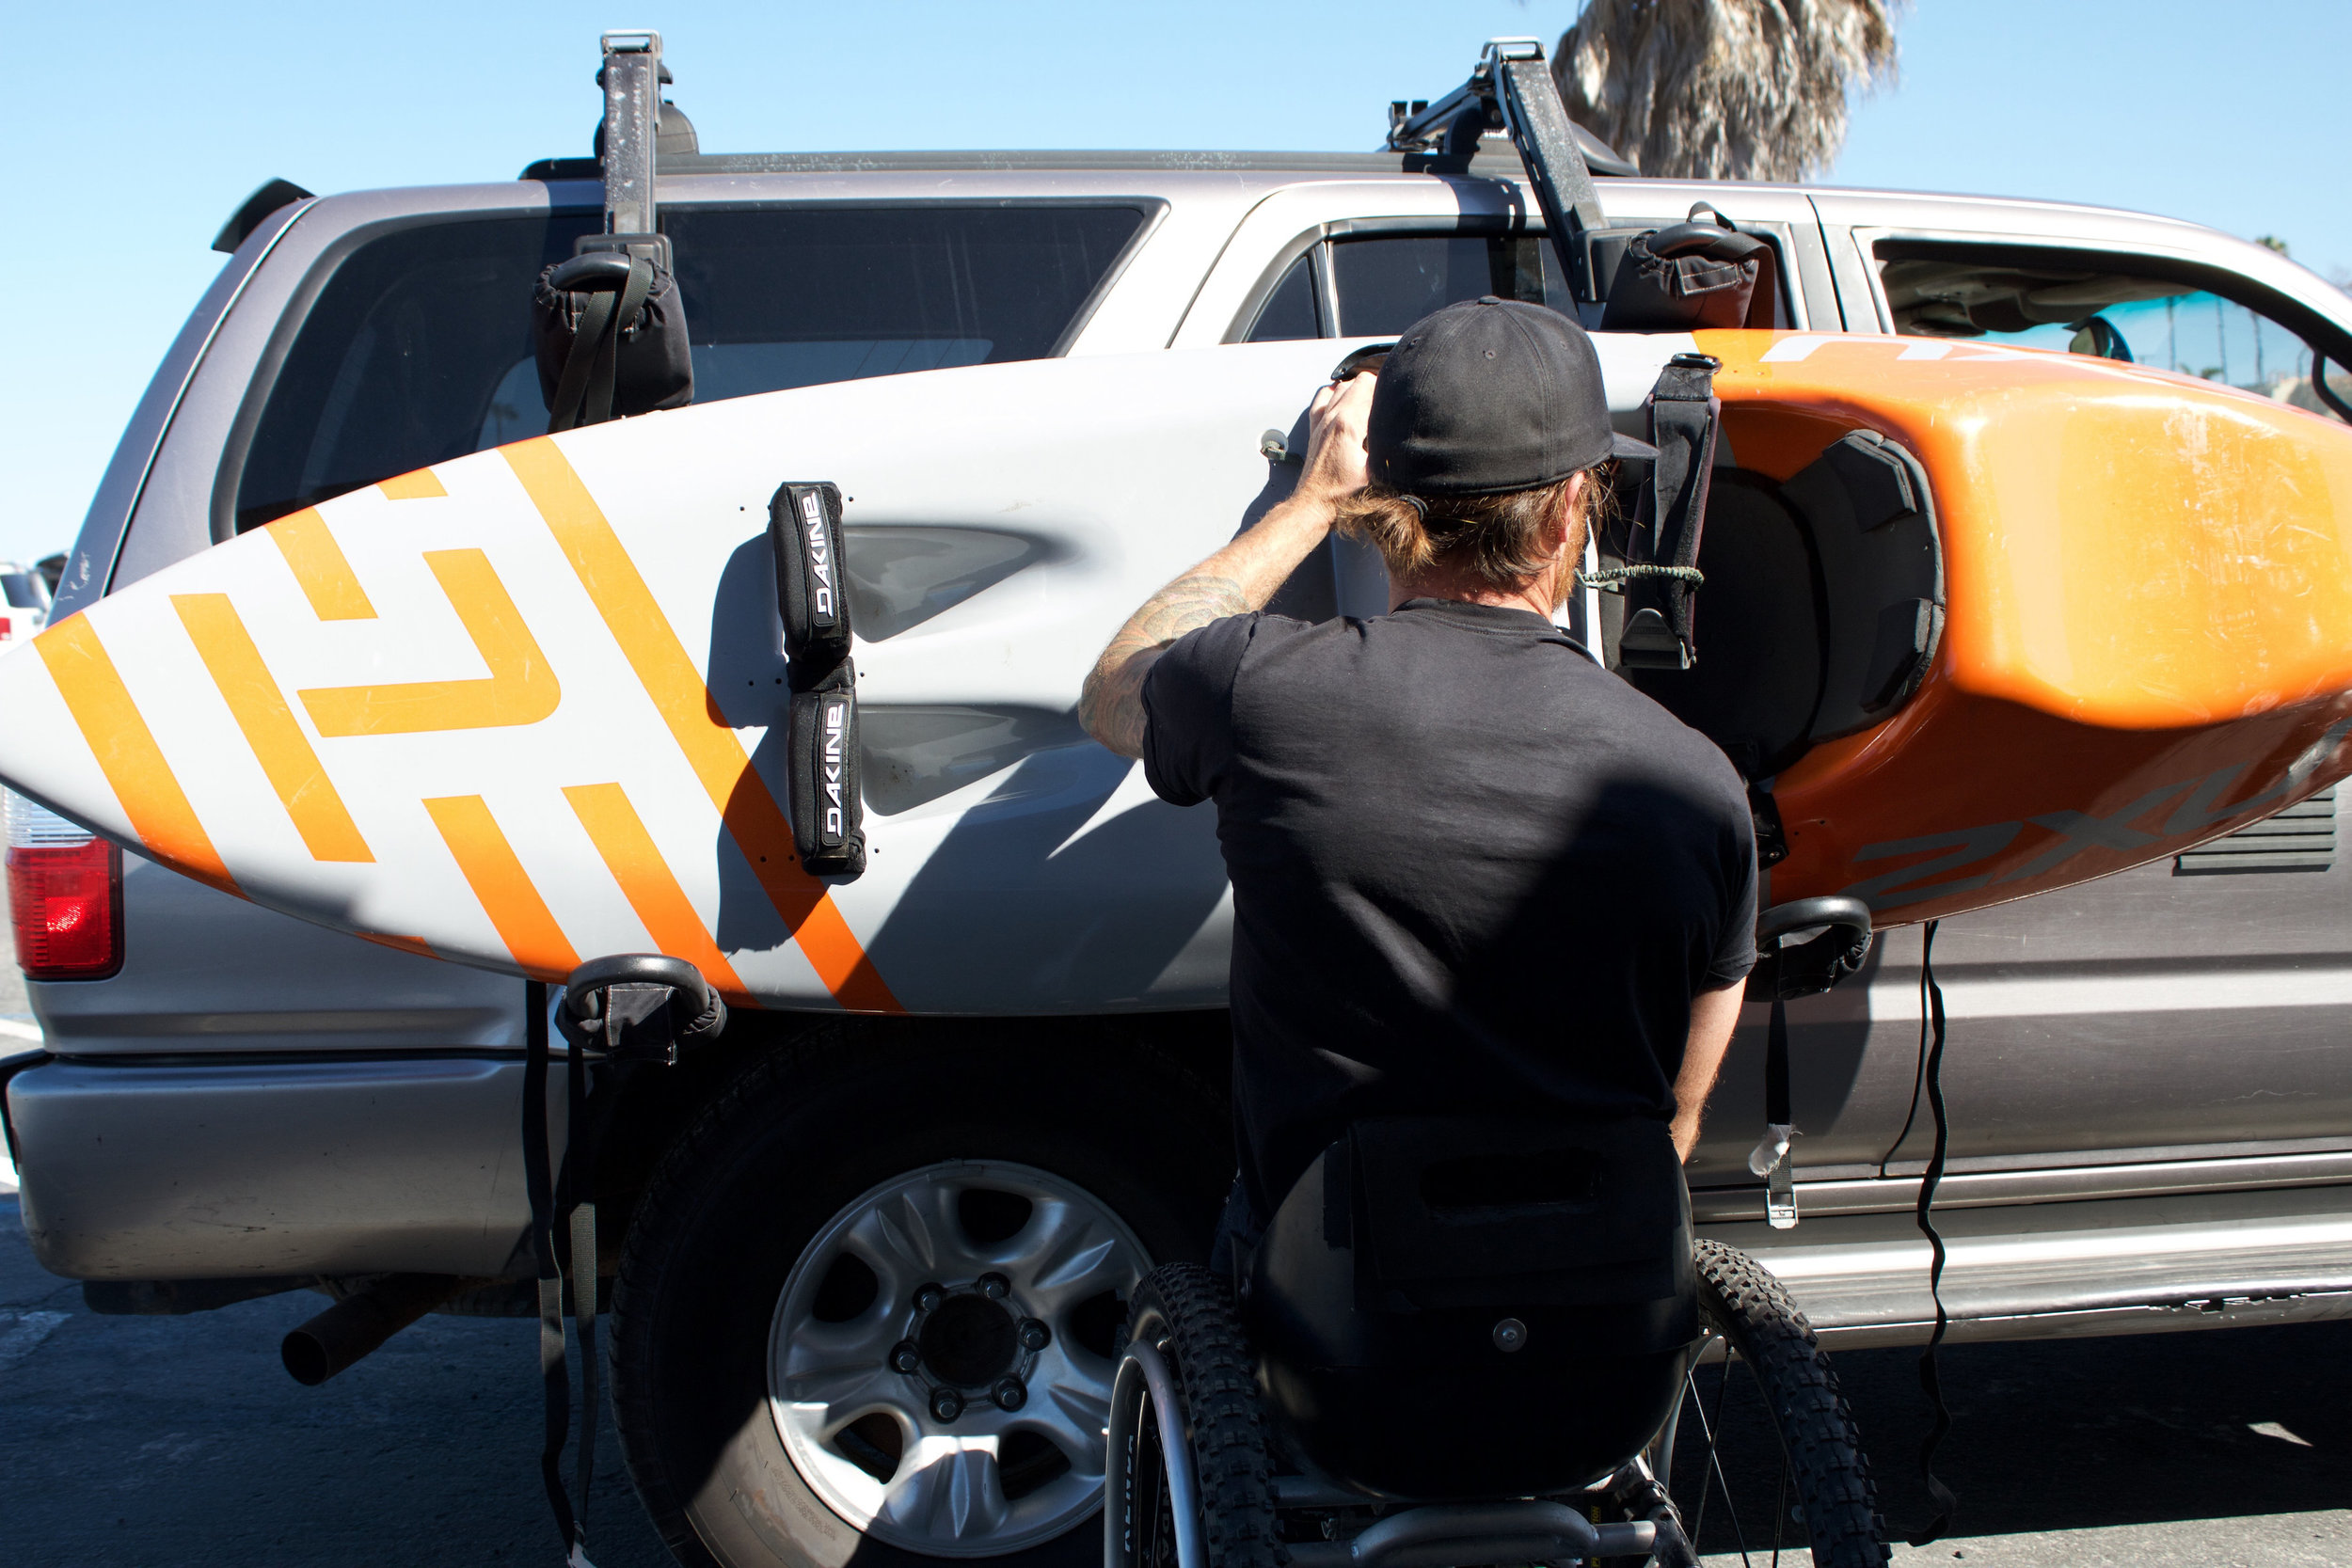 Getting the board off the car. Thanks to Thule for the racks! Photo by Austin Novy